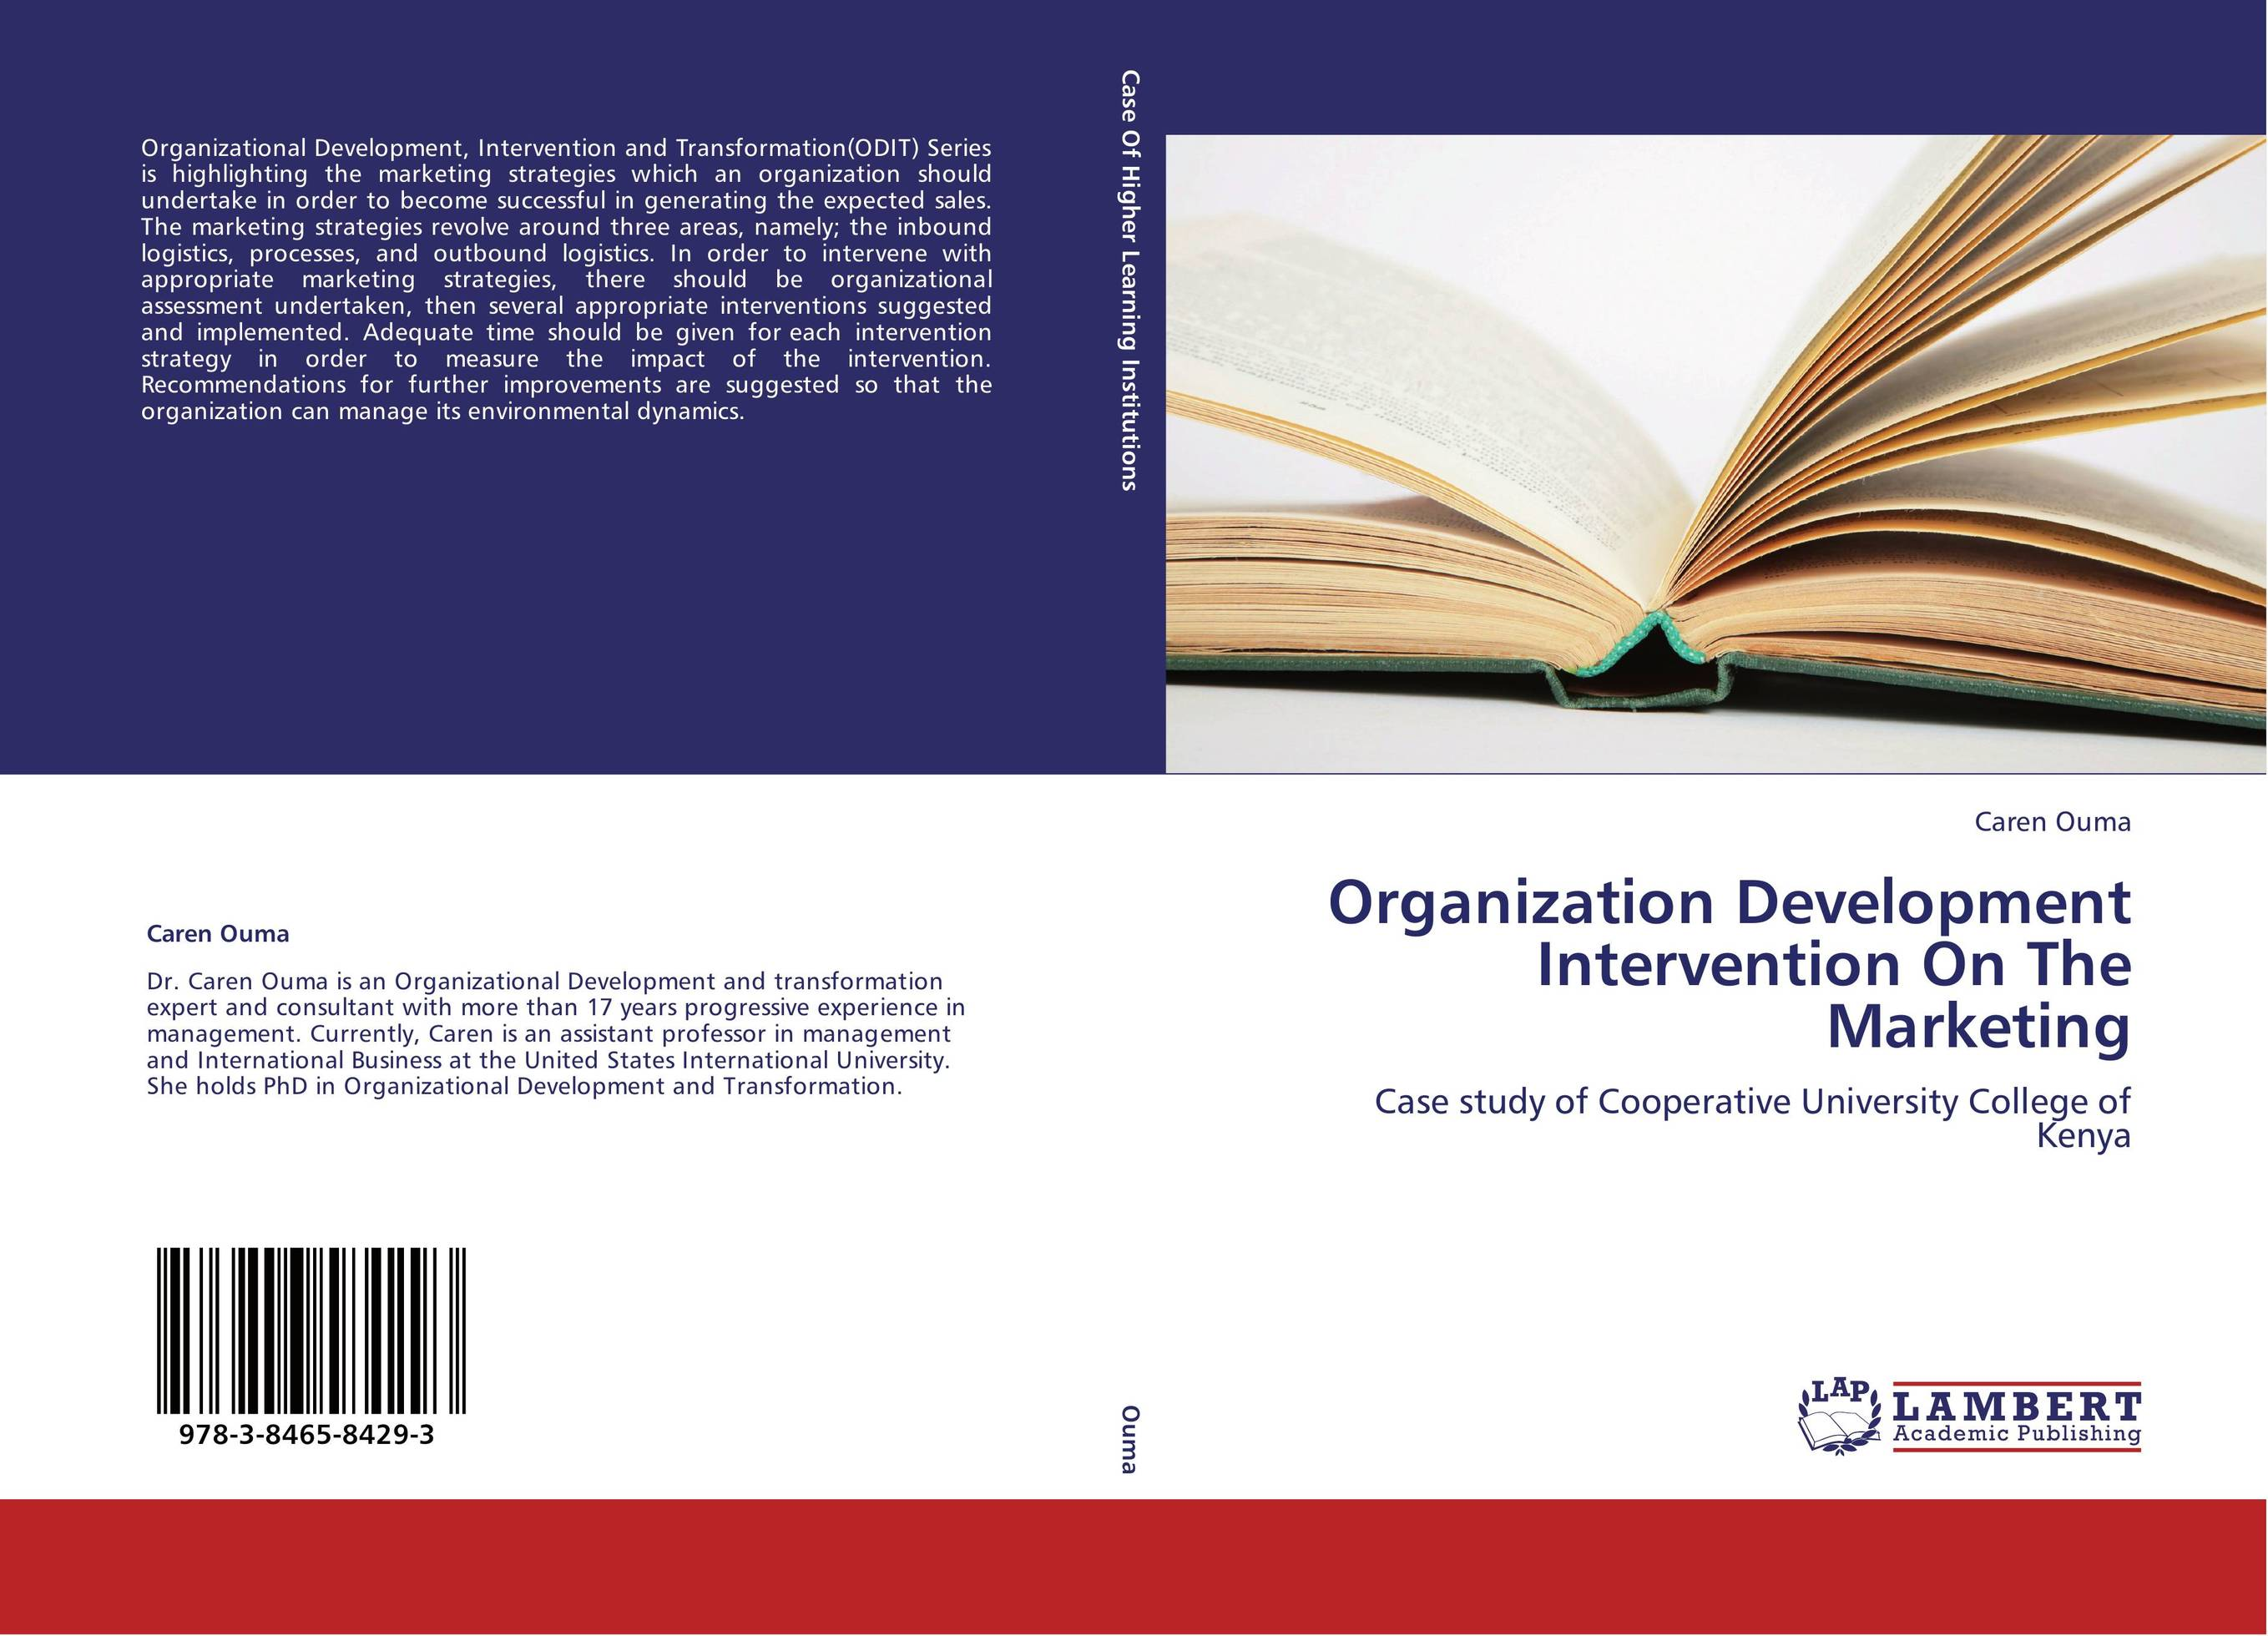 a study of organization development The present paper discusses a study of employer-based mtd in new zealand that investigated managerial attitudes towards, and thomson, amabey, c and storey, j (1998) 'the determinants of management development' international studies of management and organization vol 28 no 1 pp.